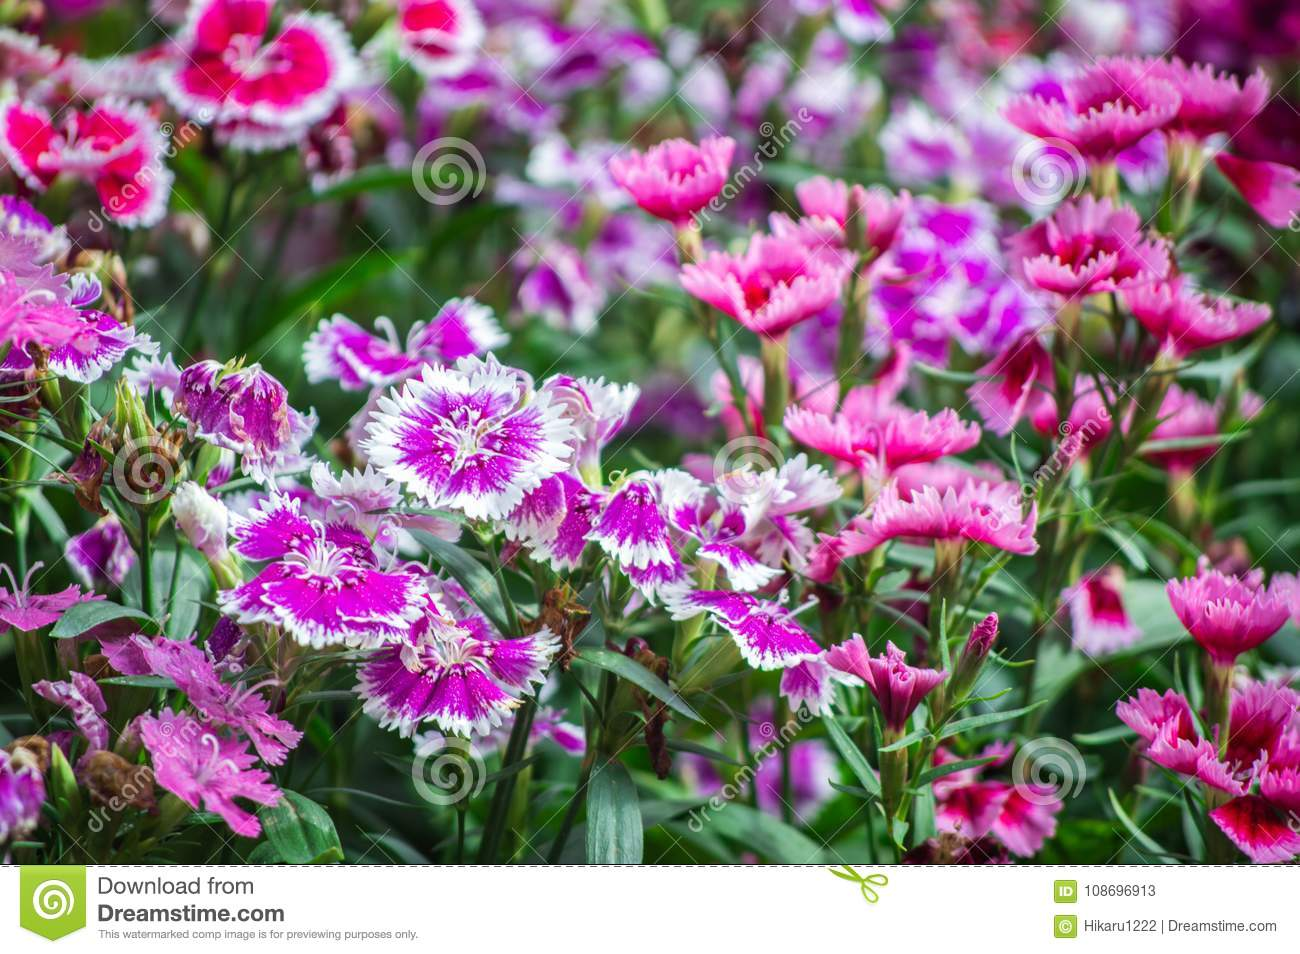 Dianthus Flower Are Blooming In The Garden Stock Image Image Of